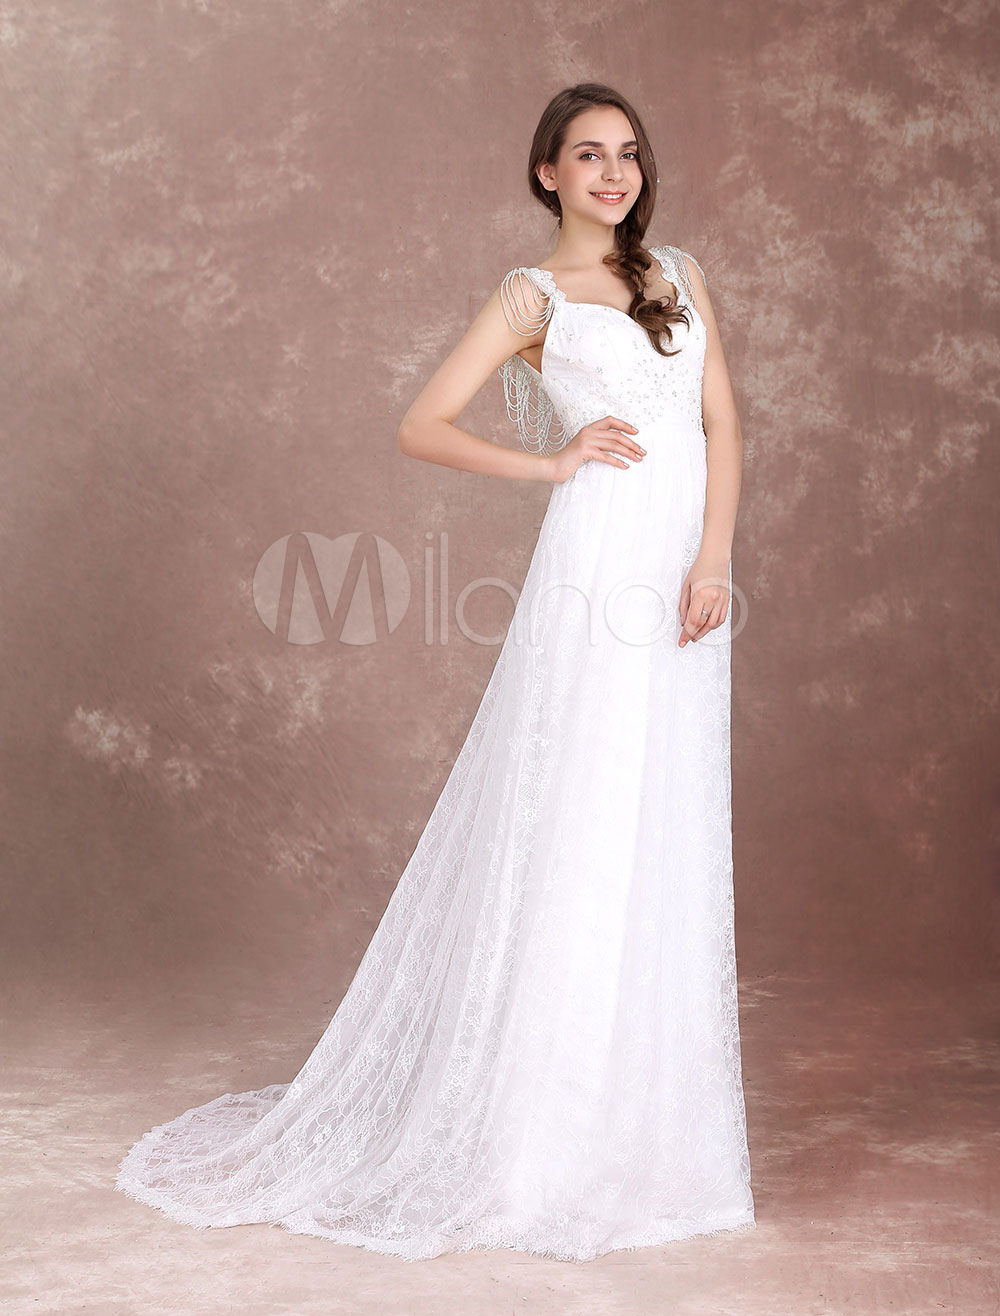 Buy Boho Wedding Dresses Lace Chains Tiered Beach Bridal Dress V Neck Backless Beading Bow Summer Wedding Gown With Train for $184.79 in Milanoo store